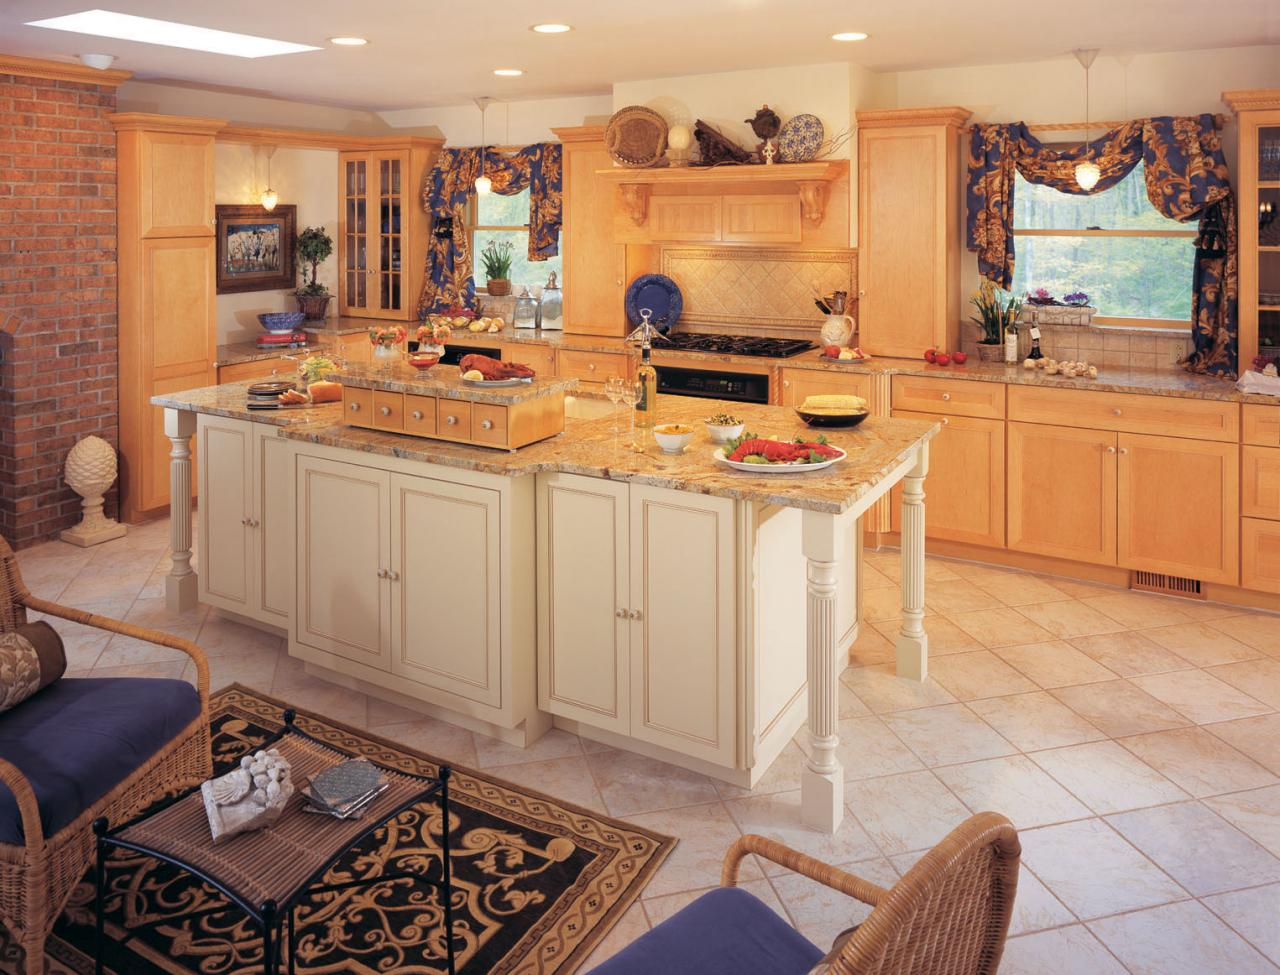 10 Warmly Brown Scheme Kitchen Ideas For Your Cold